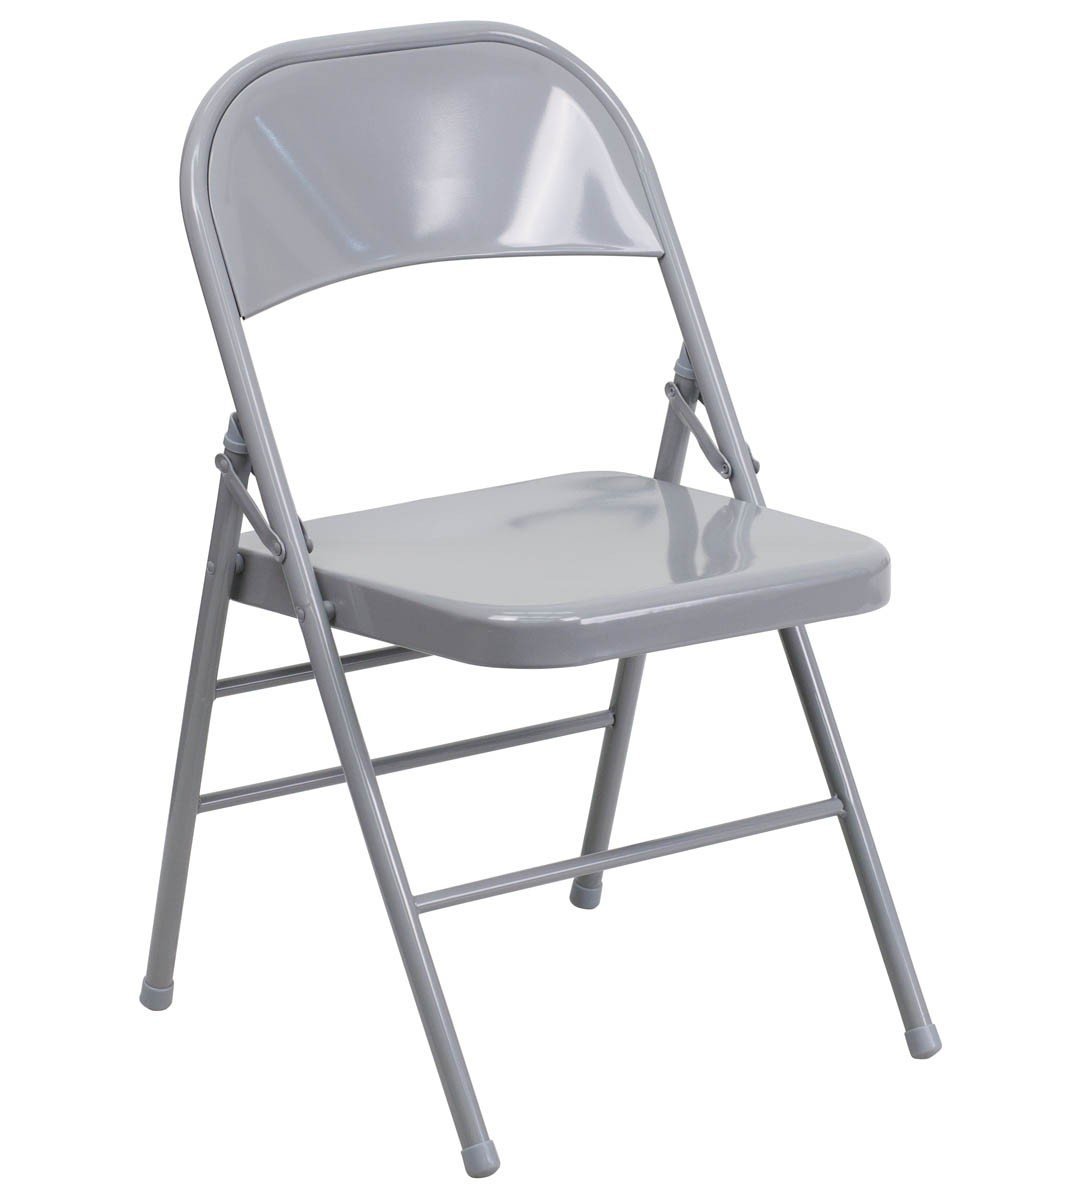 Metal Folding Chair Covers Easy Way To Sit And Relax With Metal Folding Chairs Home